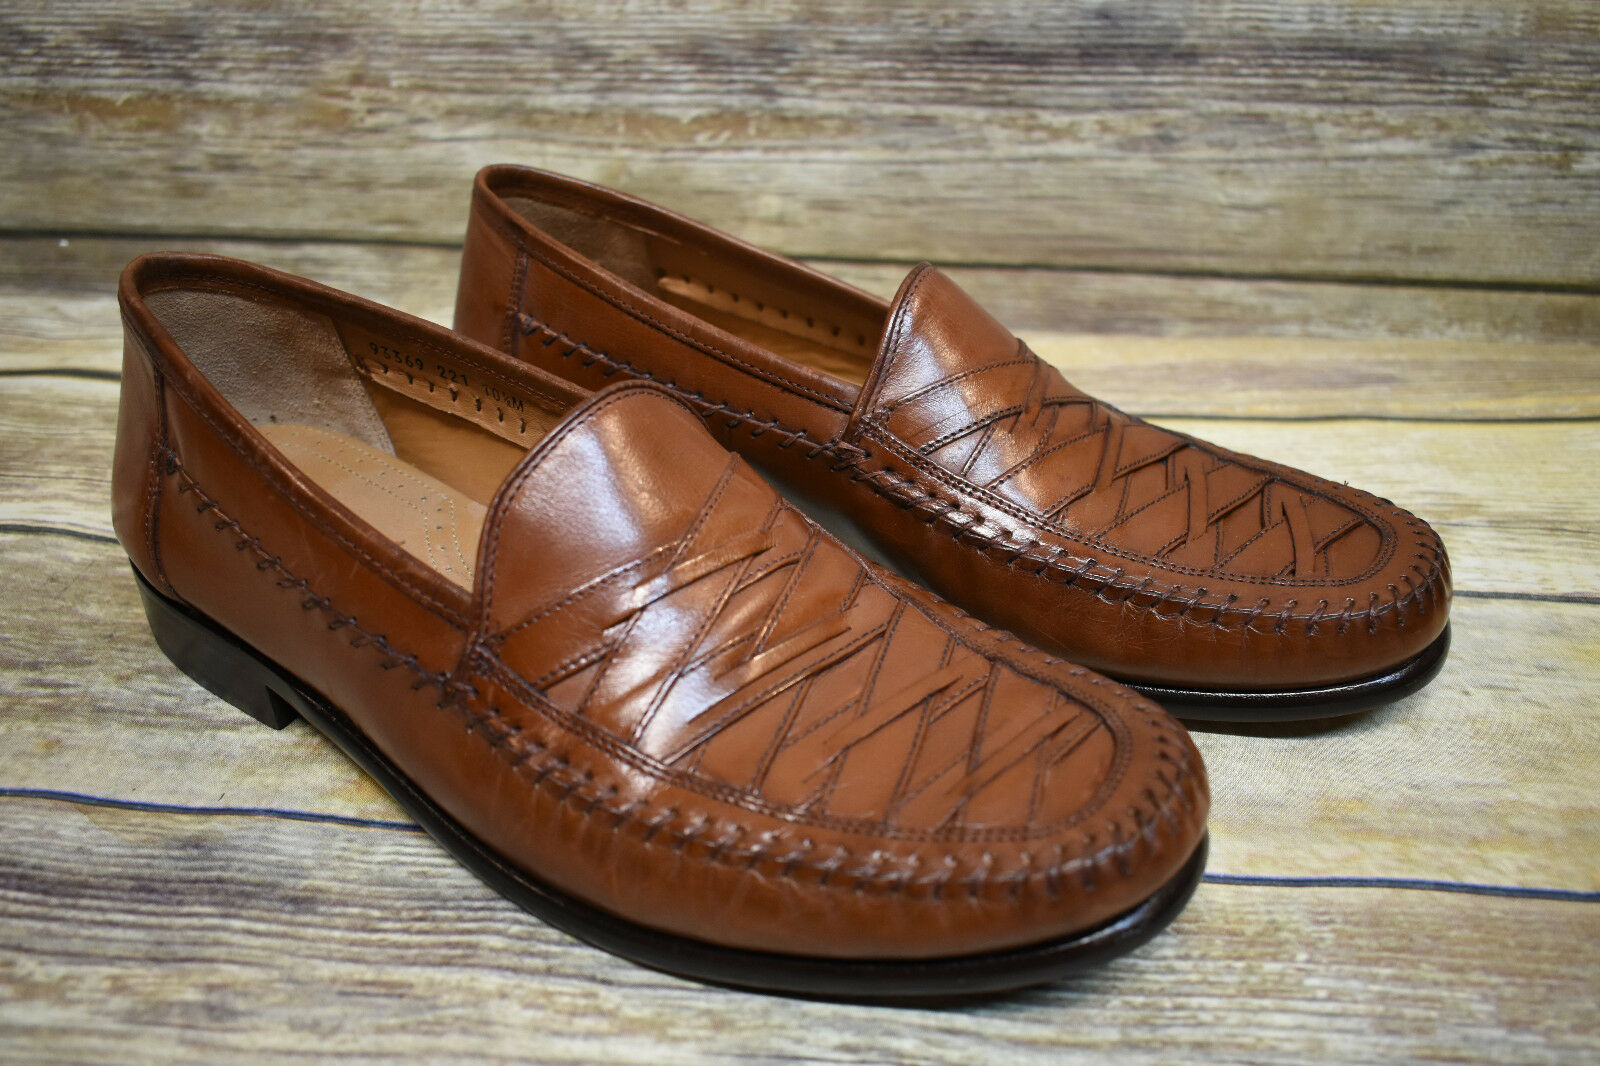 Brass Boot Woven Leather Brown Moc Toe Loafers 10.5 M